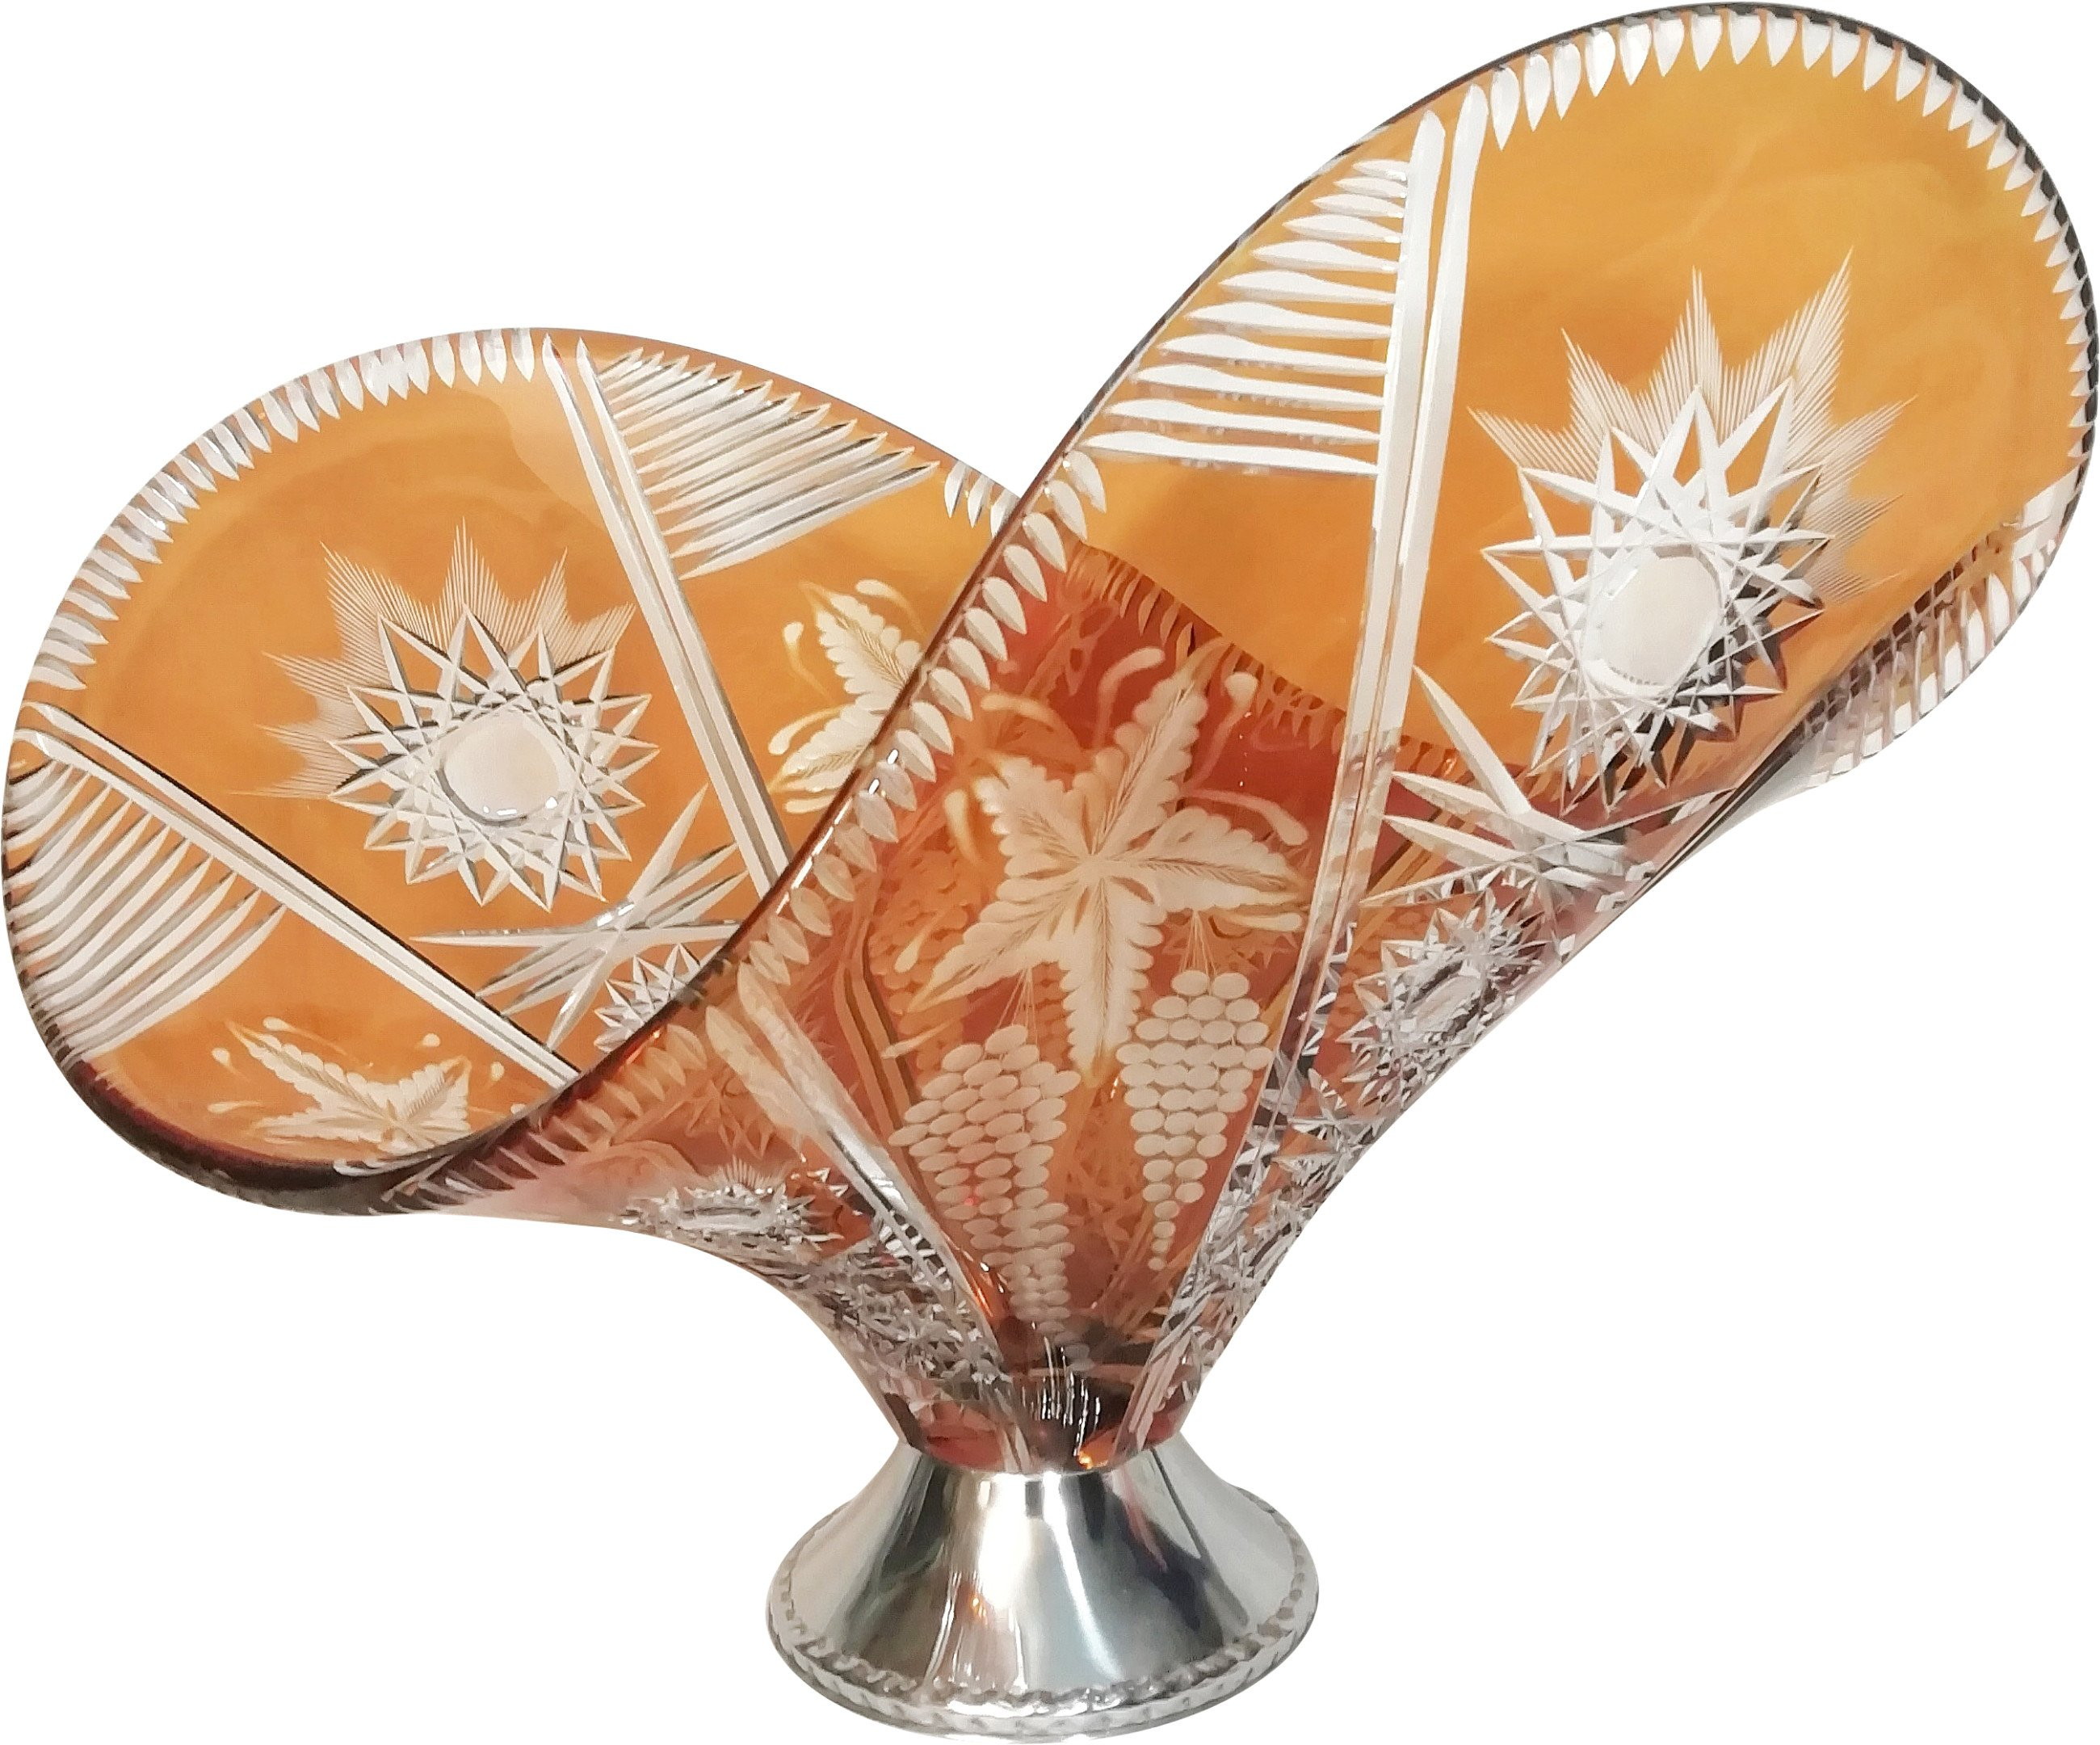 Crystal Bowl, 1980s